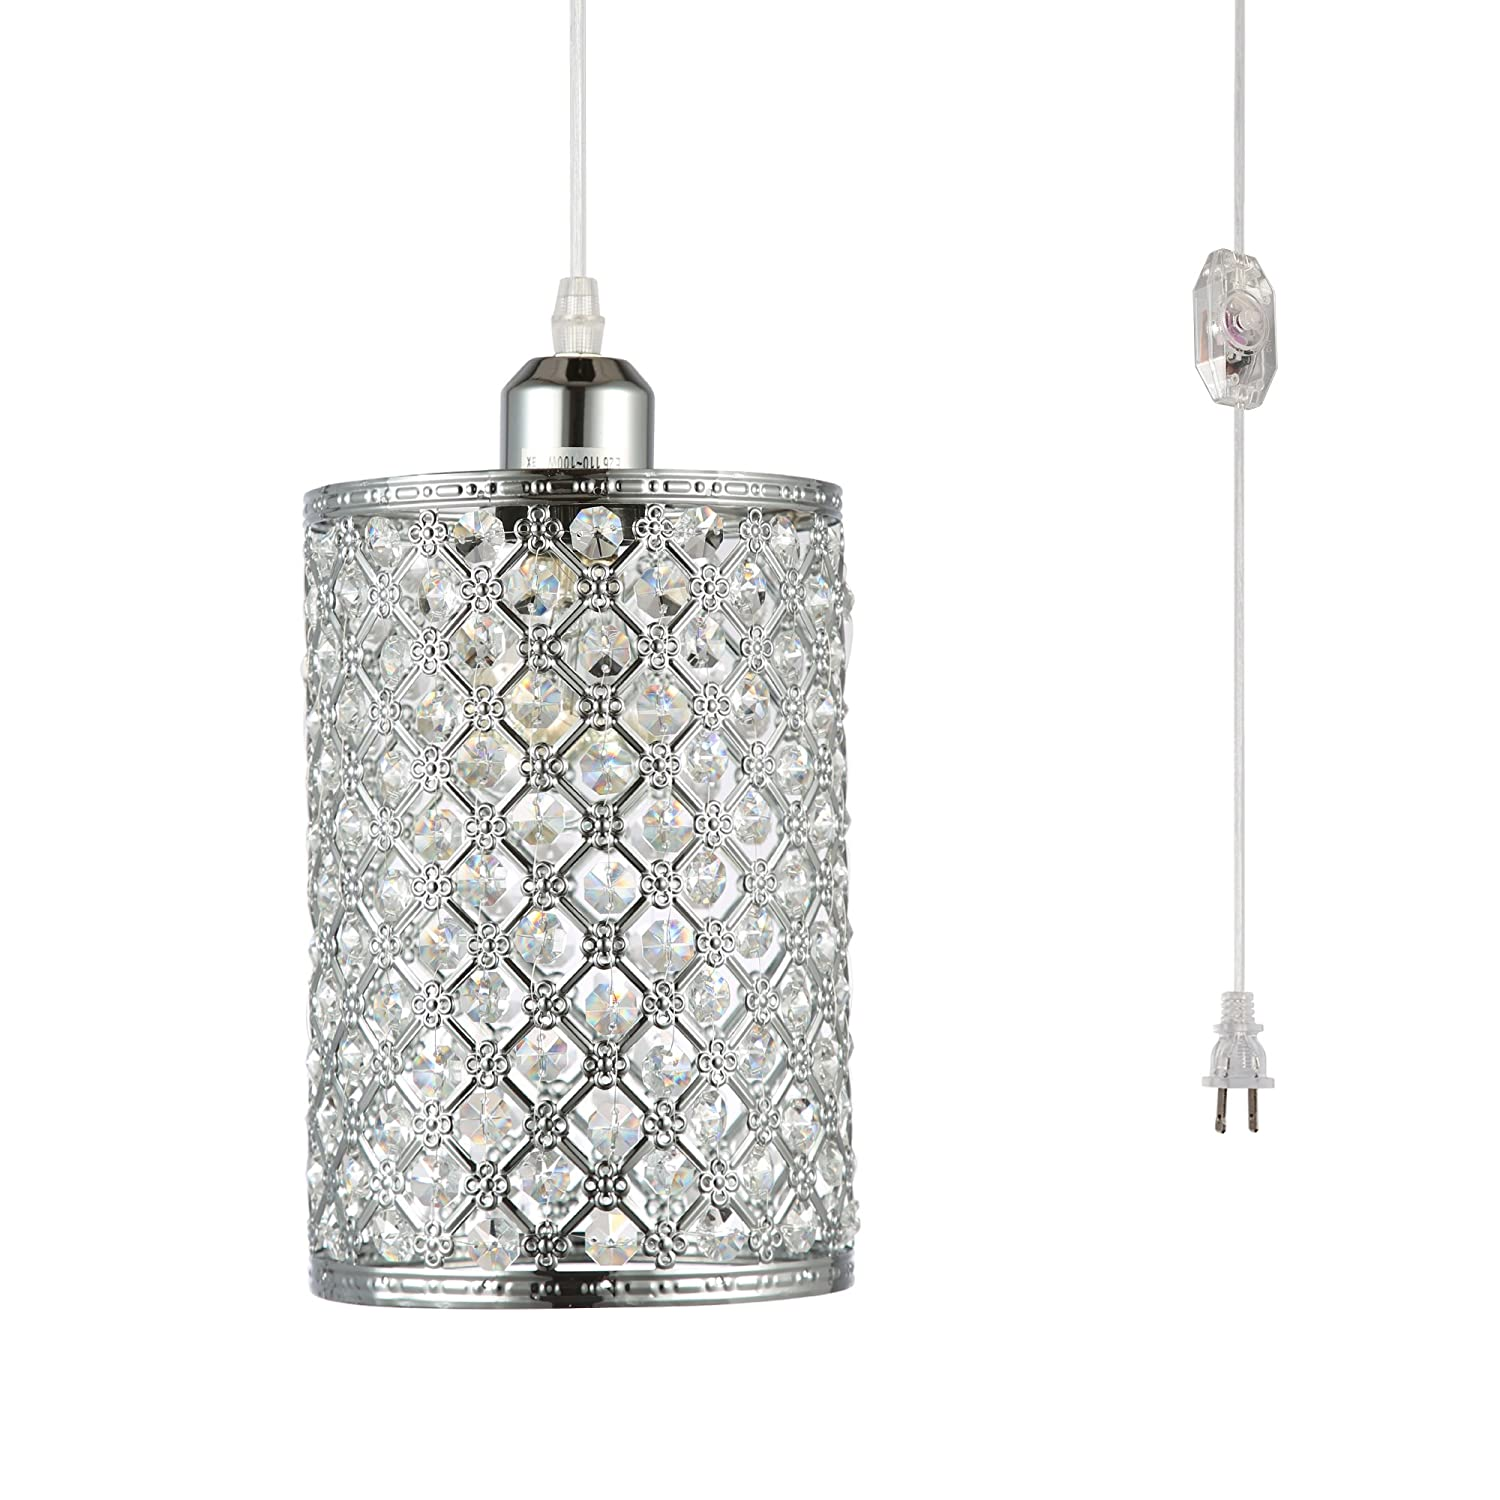 Hmvpl plug in pendant lighting fixtures with long hanging cord and dimmer switch modern crystal hanging chandelier sparkly swag ceiling lamp for kitchen